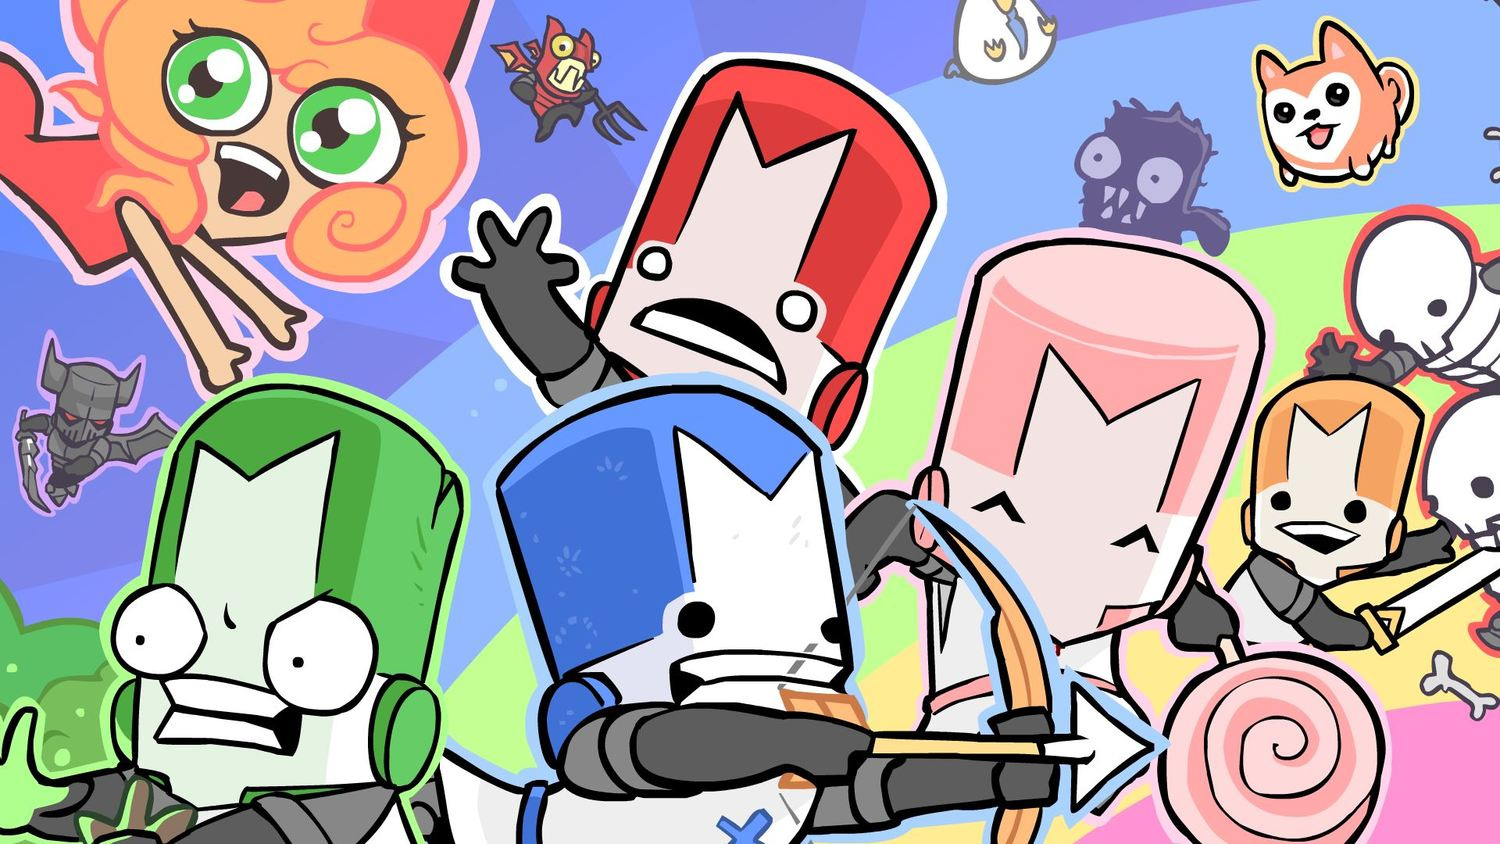 Castle Crashers Remastered Coming To PS4 Soon, Is In Final Approval Process